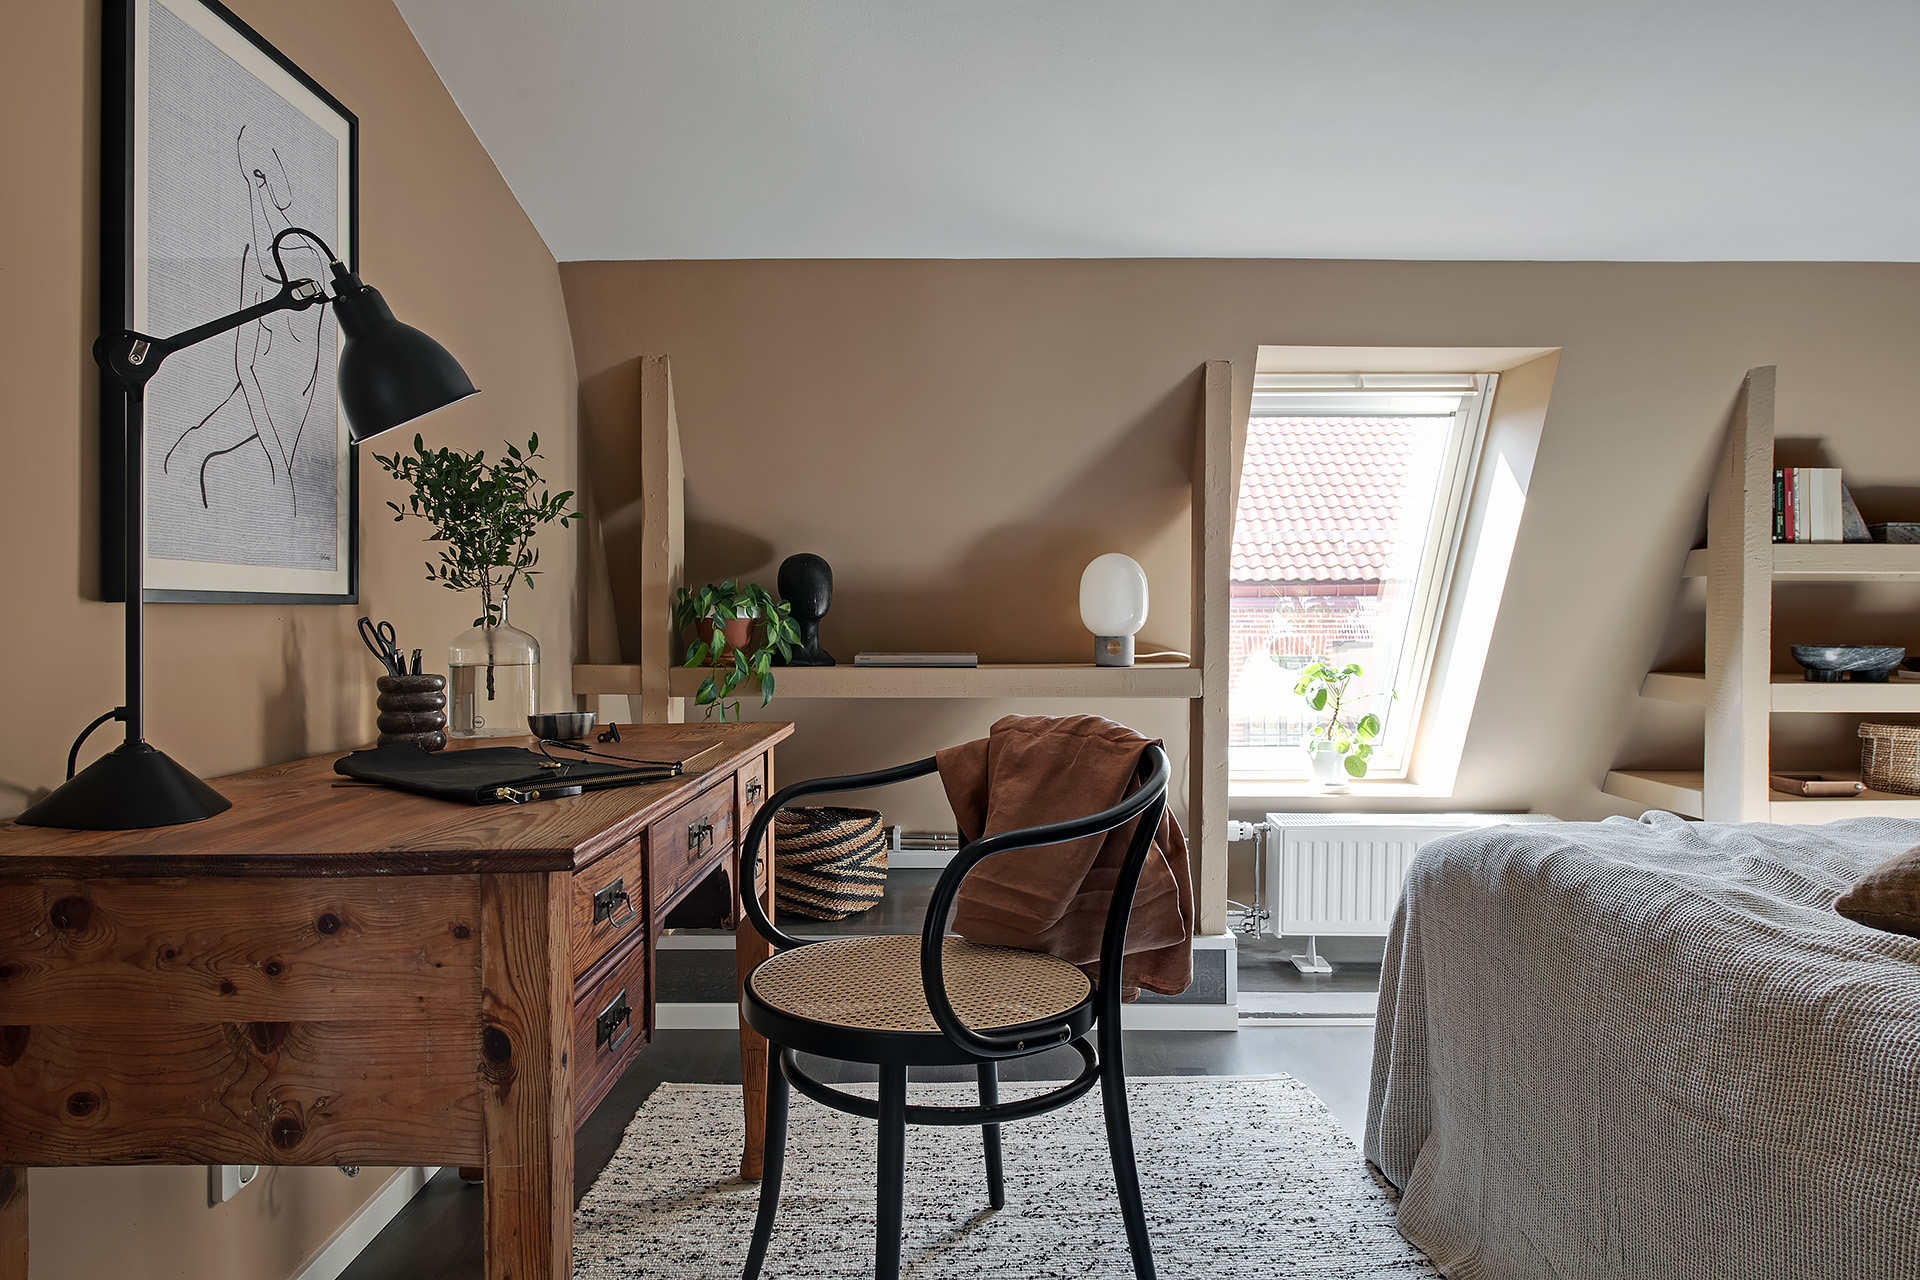 The Nordroom - A Scandinavian Attic Apartment Painted in Soft Earthy Tones